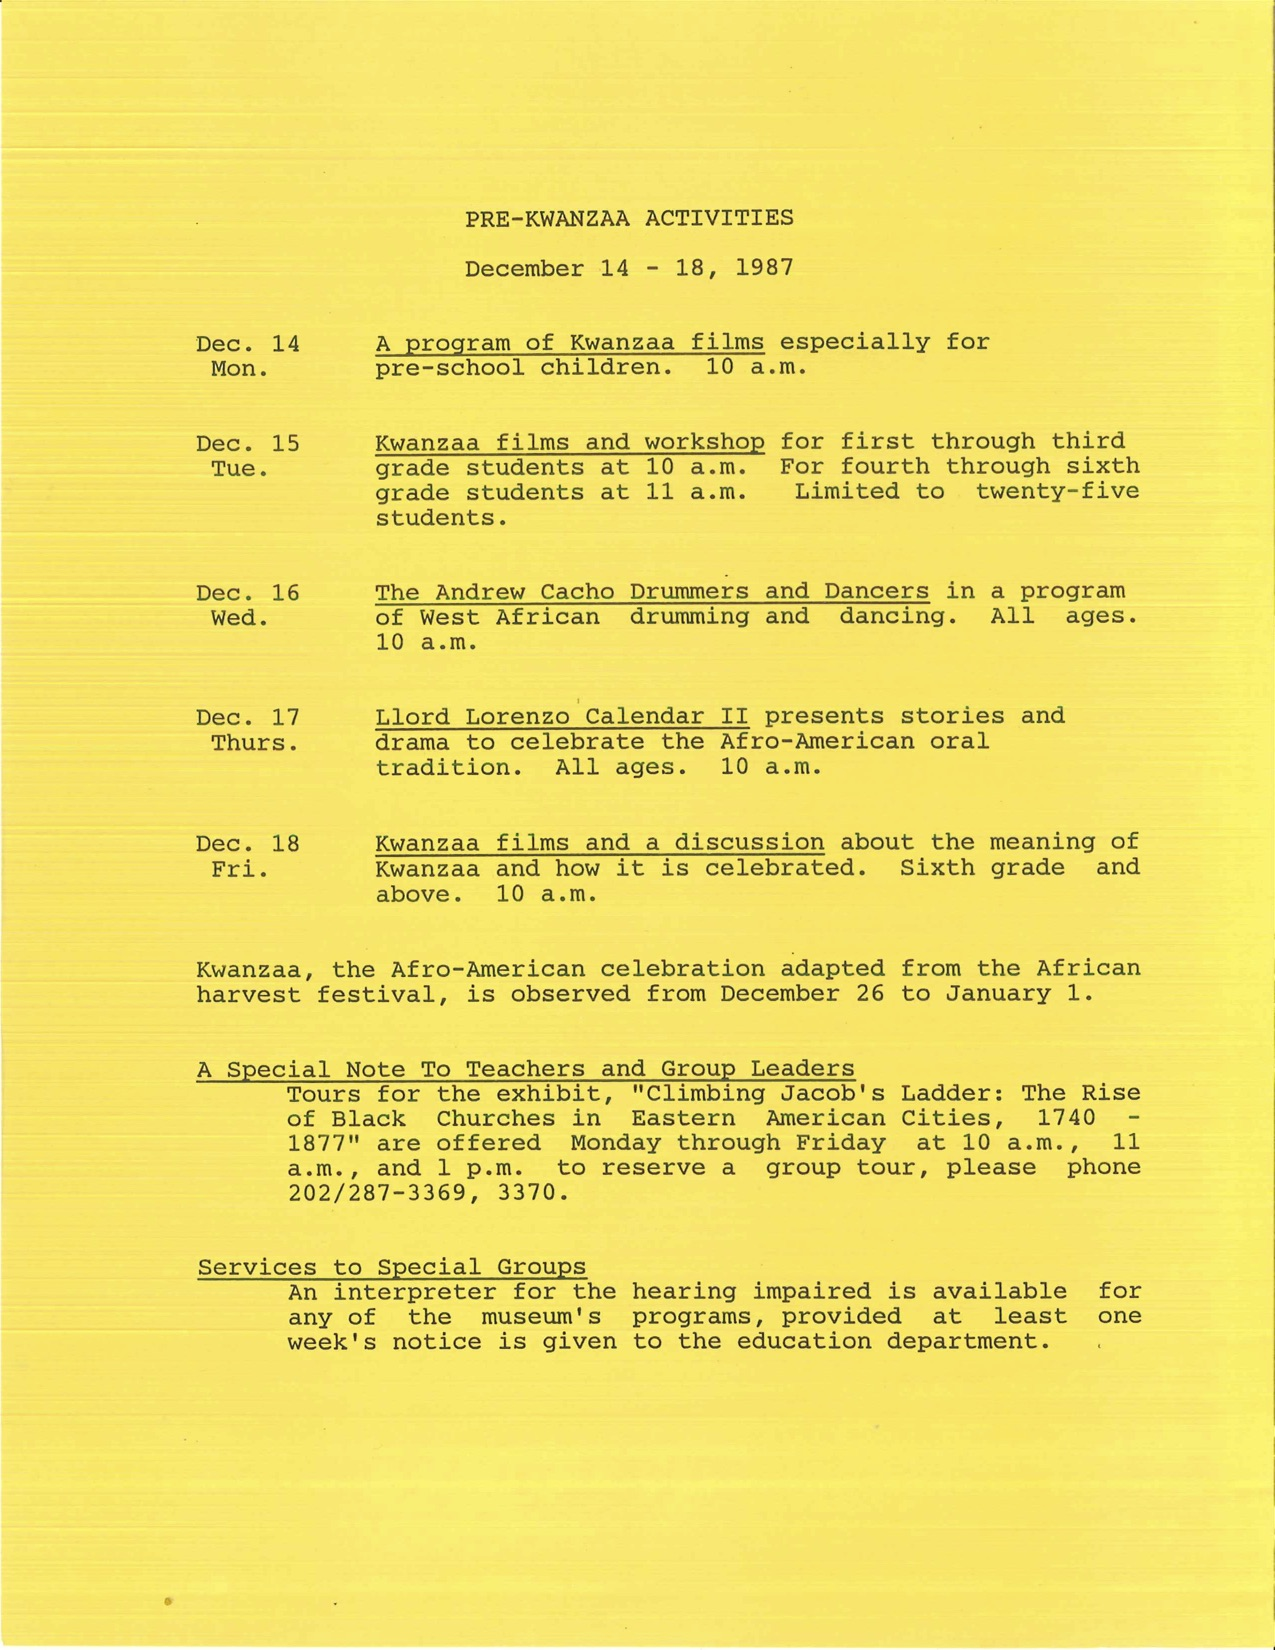 A list of five Kwanzaa activities that took place each night of the week of December 14-18, 1987. Al